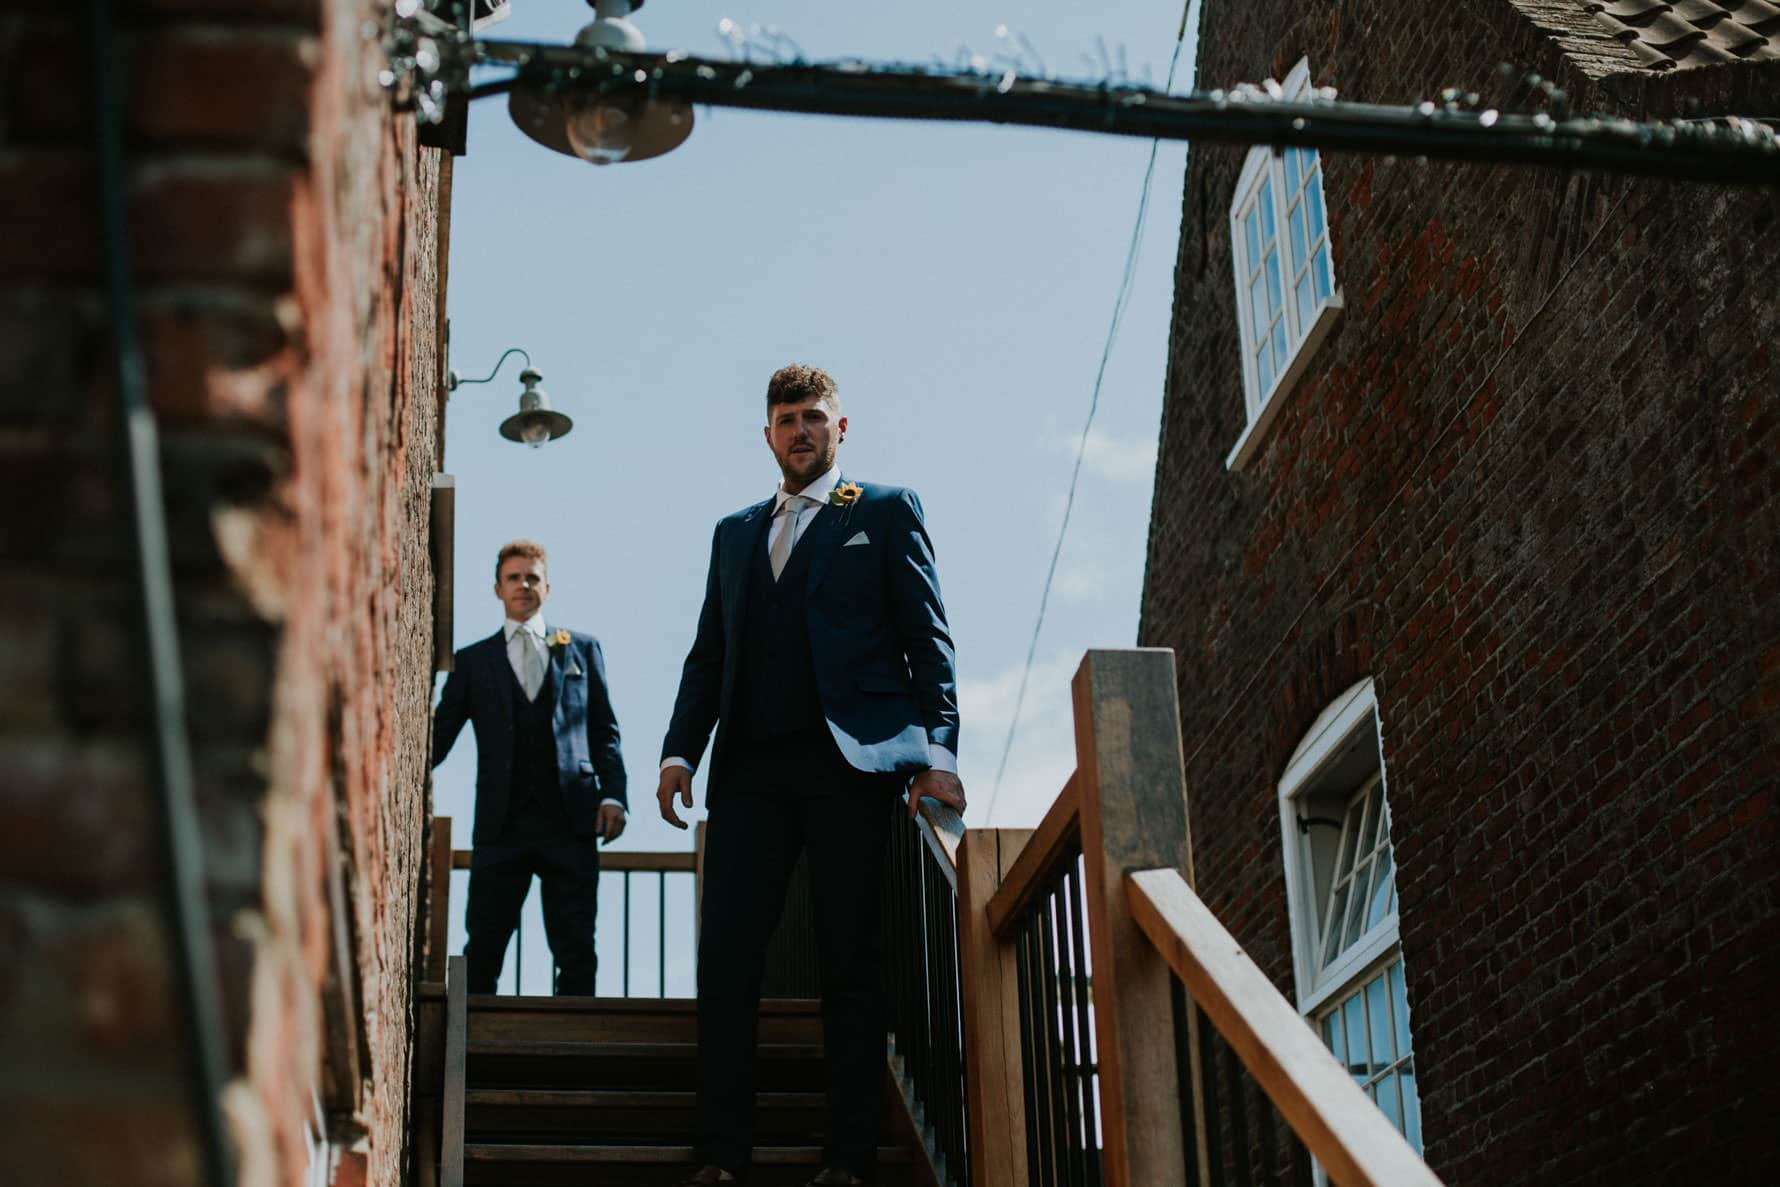 Groom and best man walking down some steps